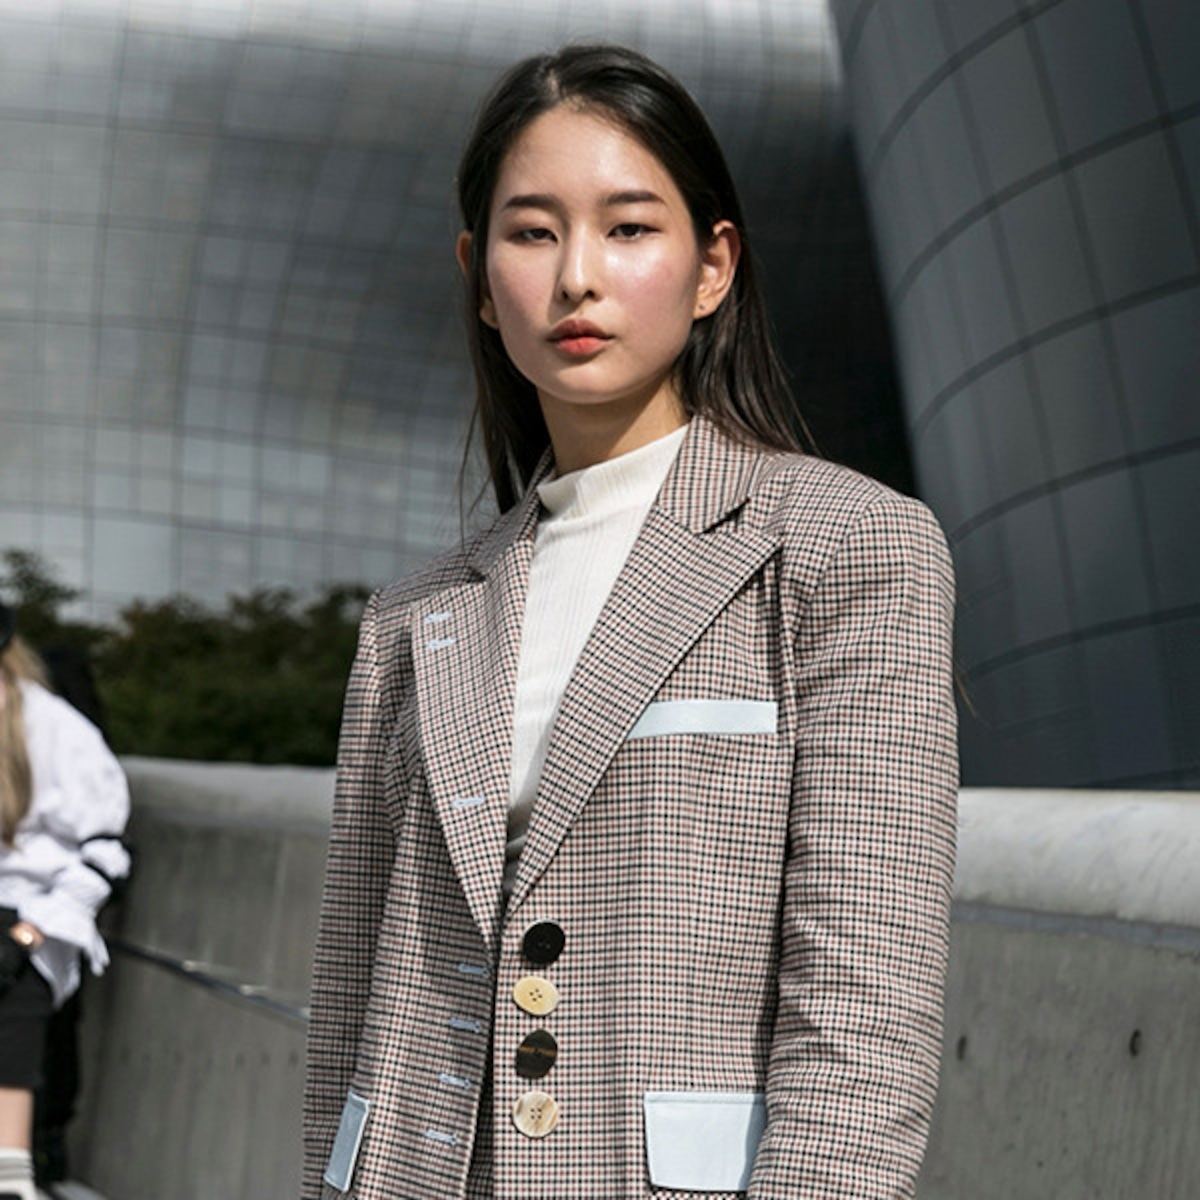 Korean Fashion Trends 2020.The Best Street Style From Seoul Fashion Week Spring 2020